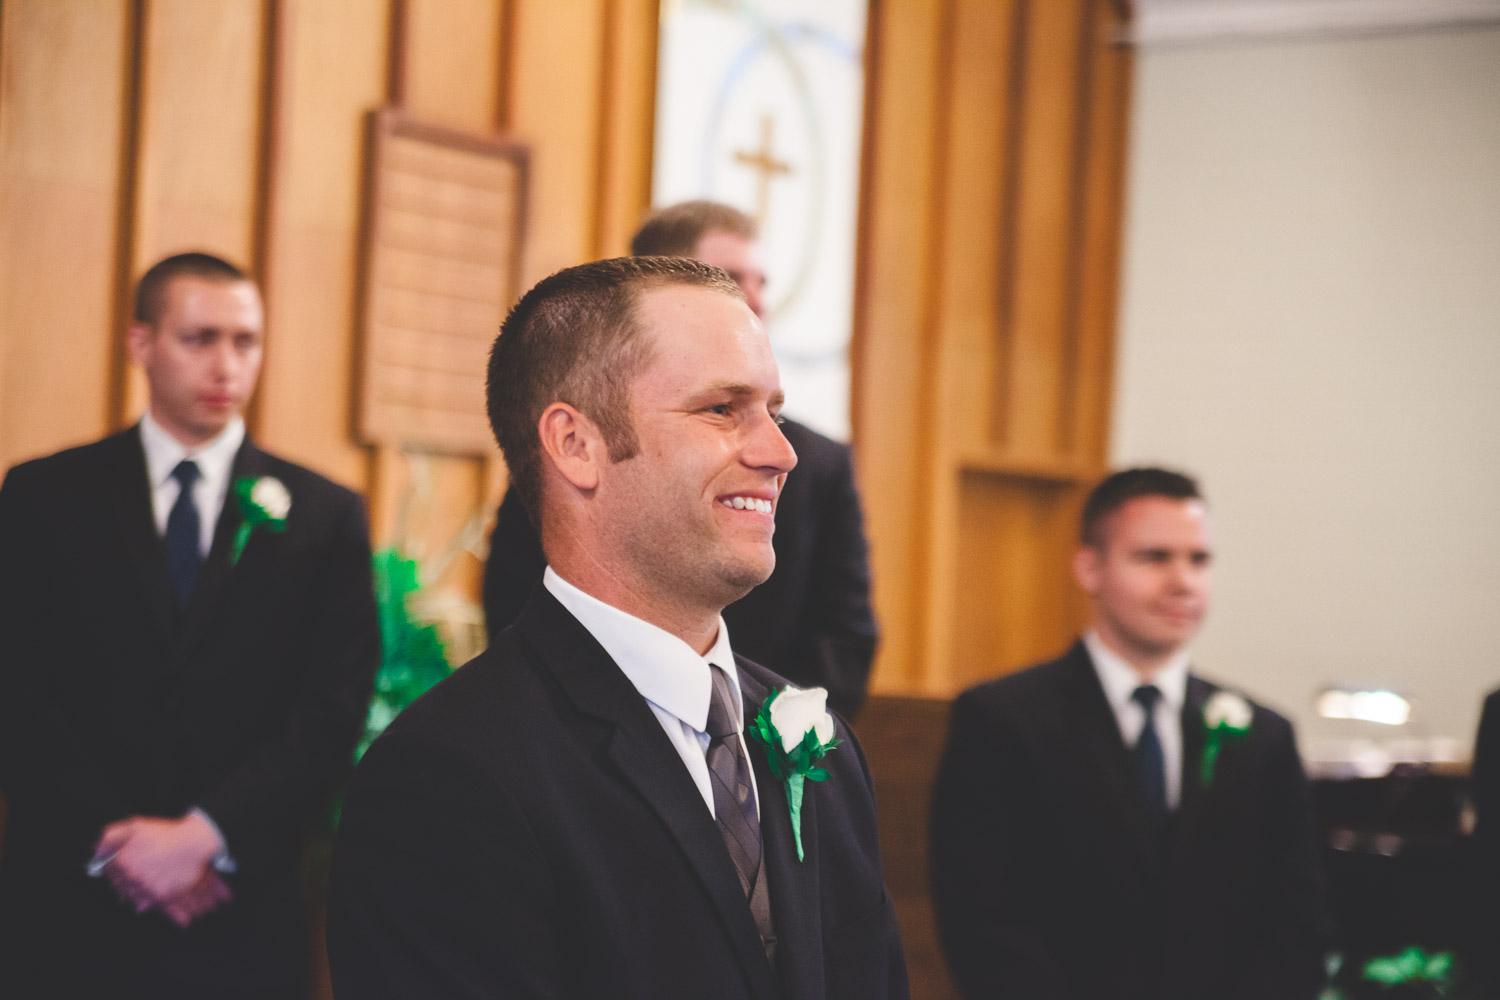 groom reaction to bride walking down the aisle